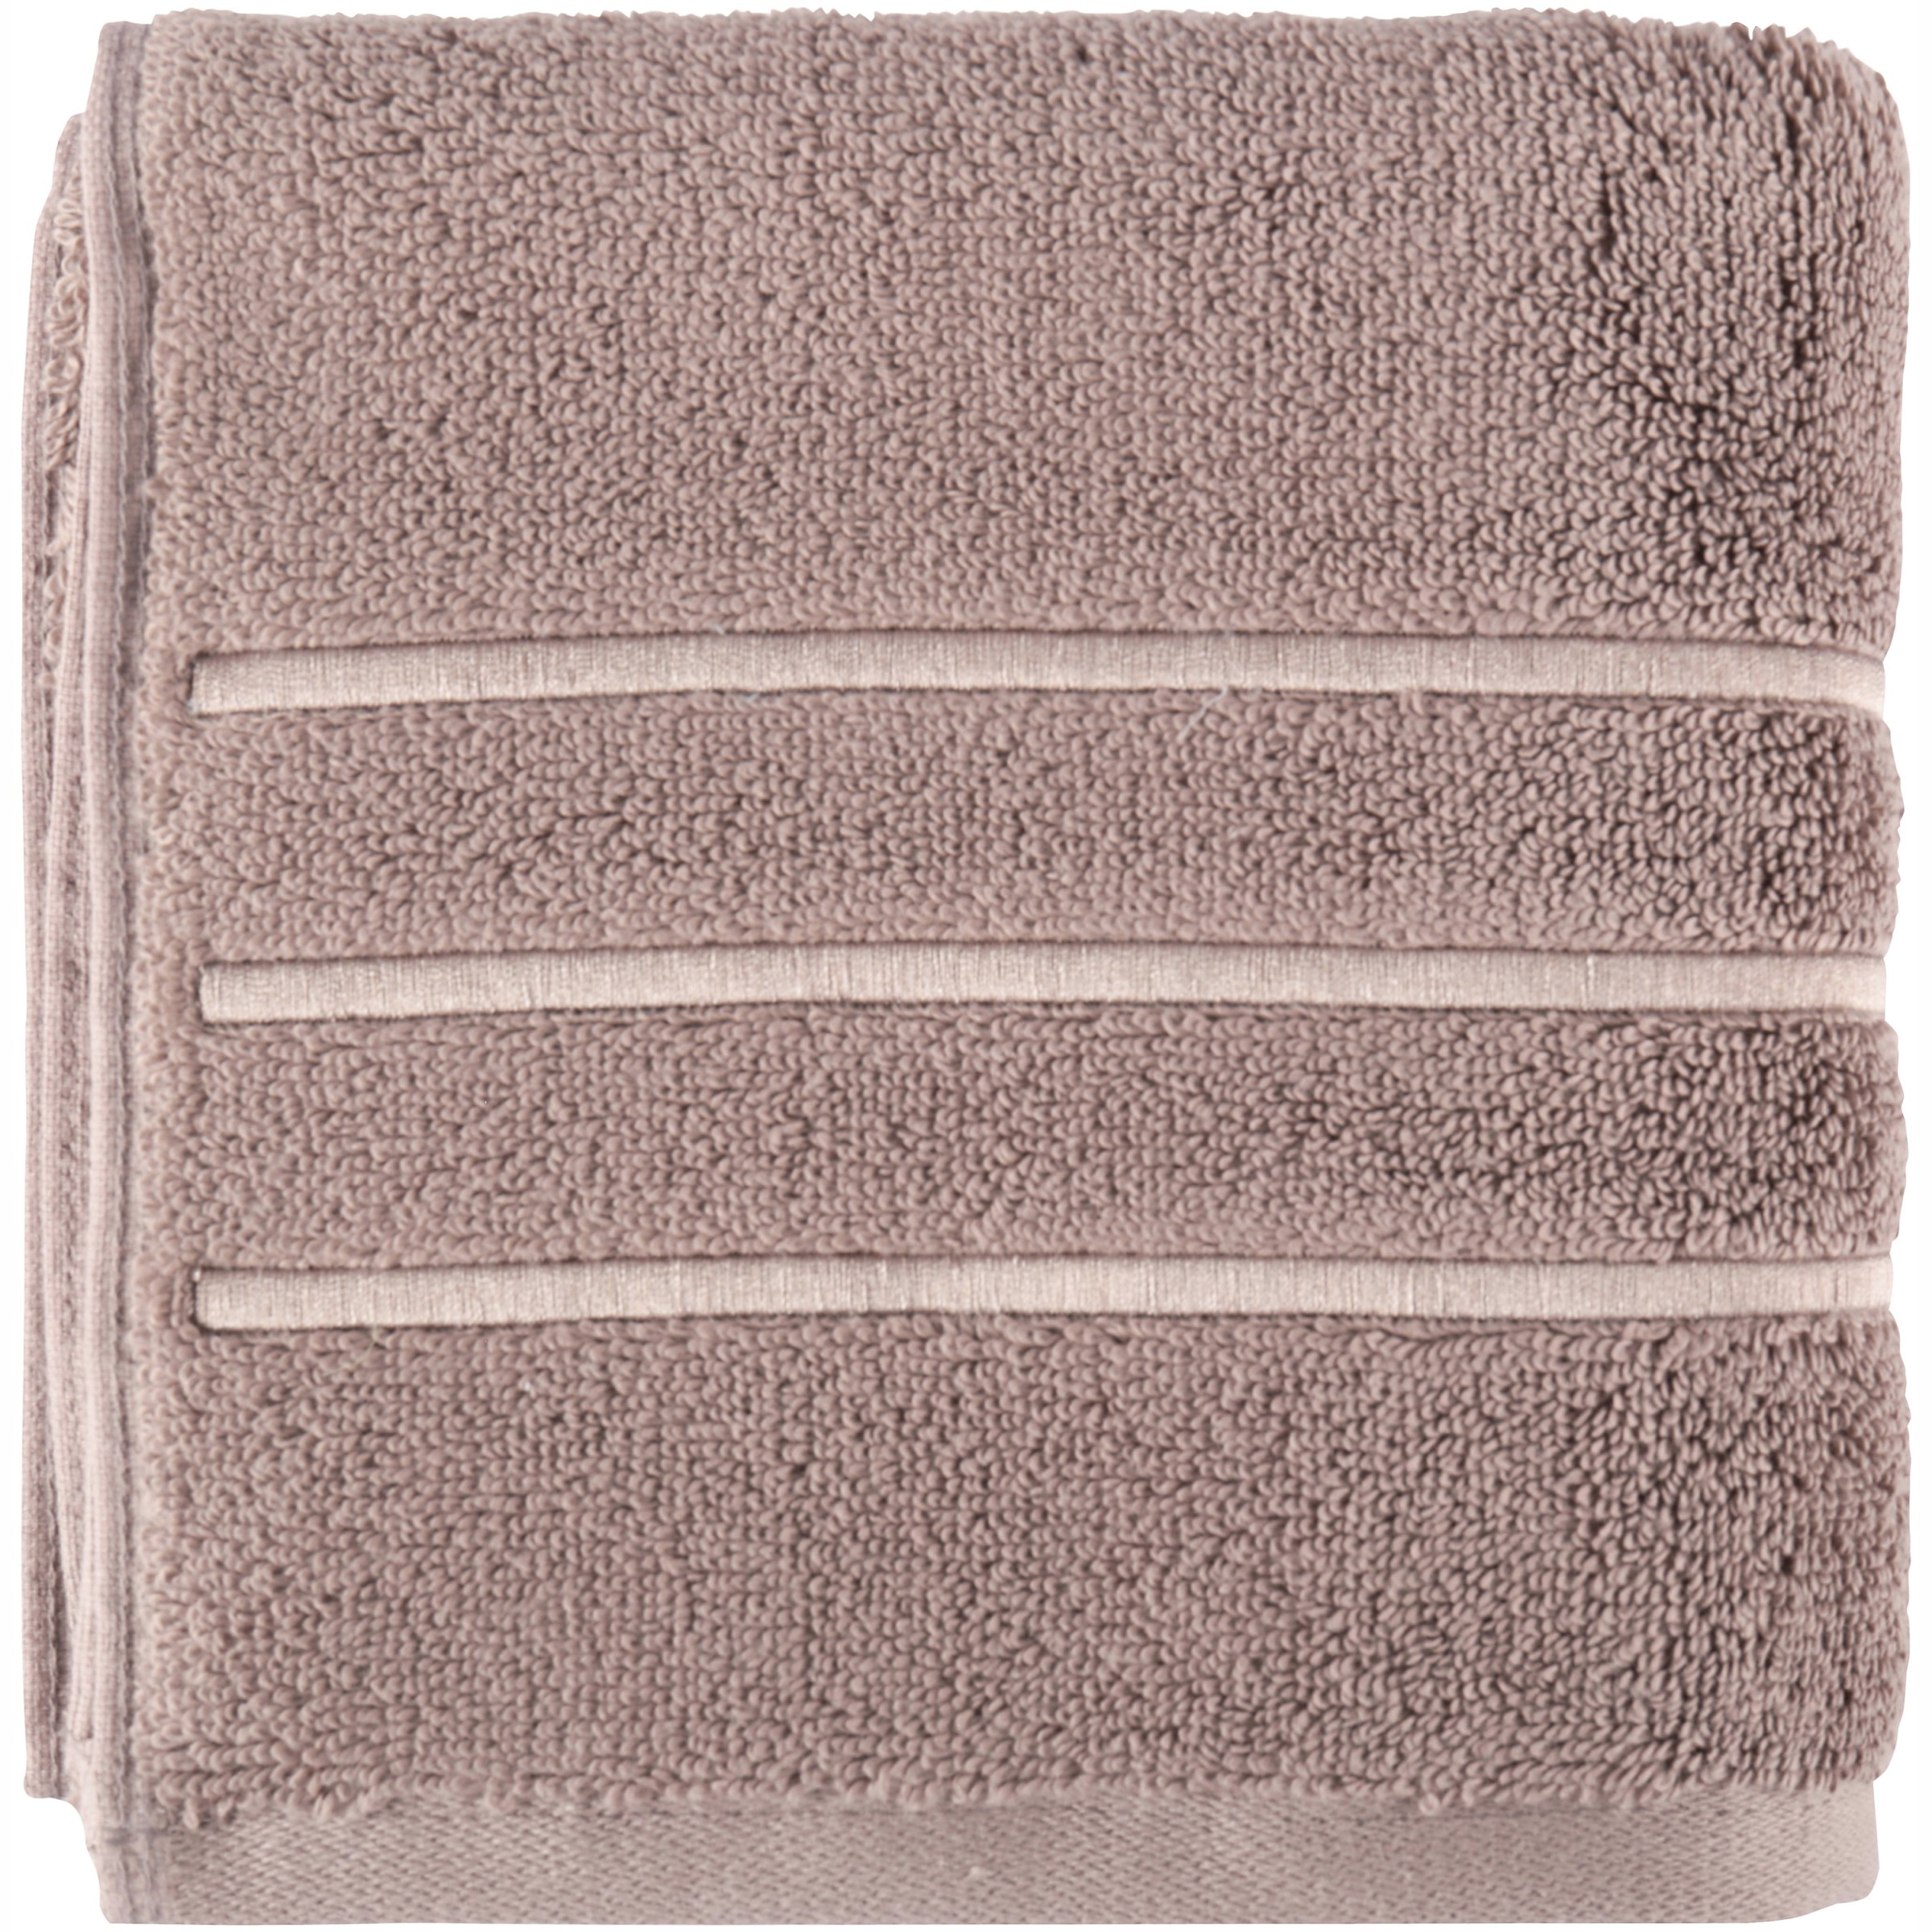 Hotel Style Bath Towel Collection by Loftex